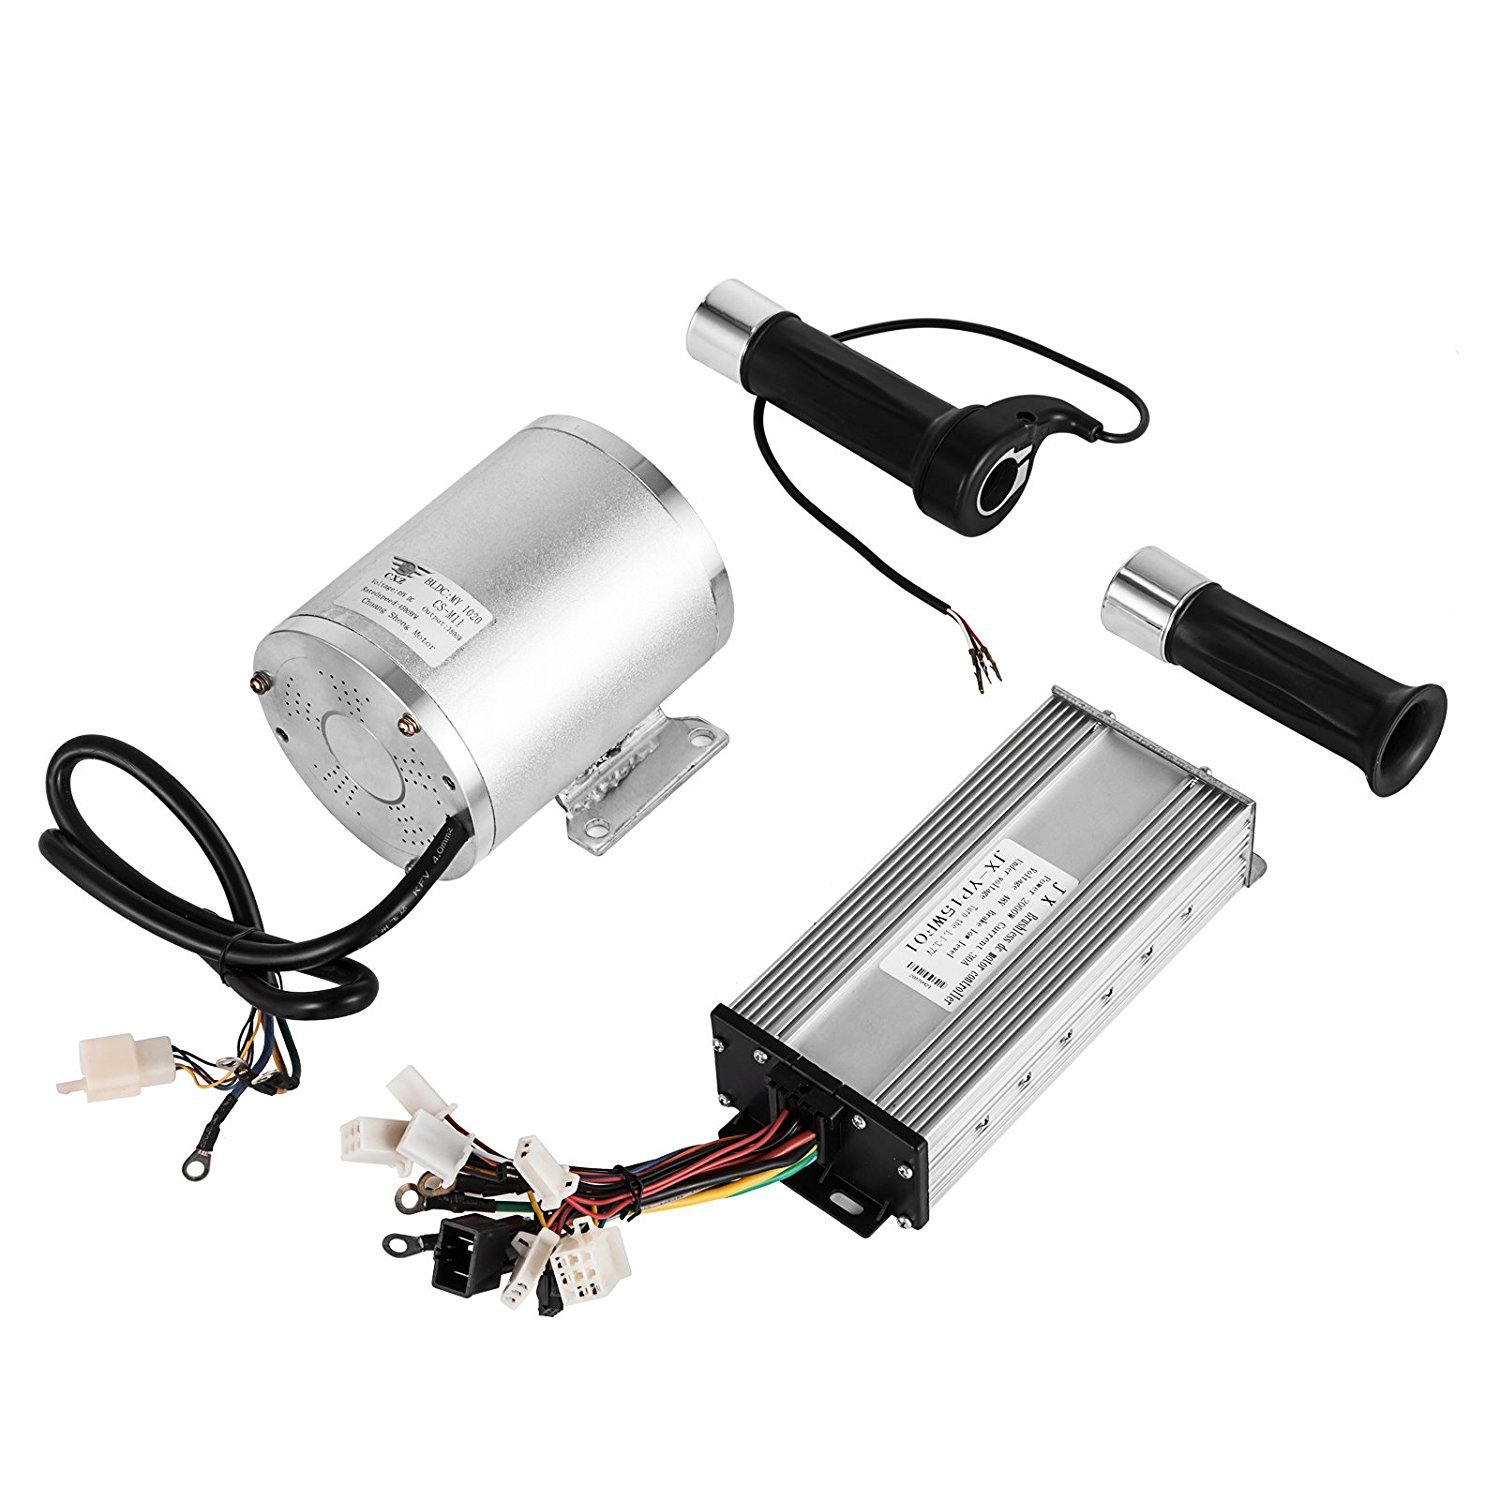 Mophorn 1800W Electric Brushless DC Motor Kit 48V High Speed Brushless Motor with 32A Speed Controller and Throttle Grip Kit for Go Karts E-bike Electric Throttle Motorcycle Scooter and More (1800W) by Mophorn (Image #1)